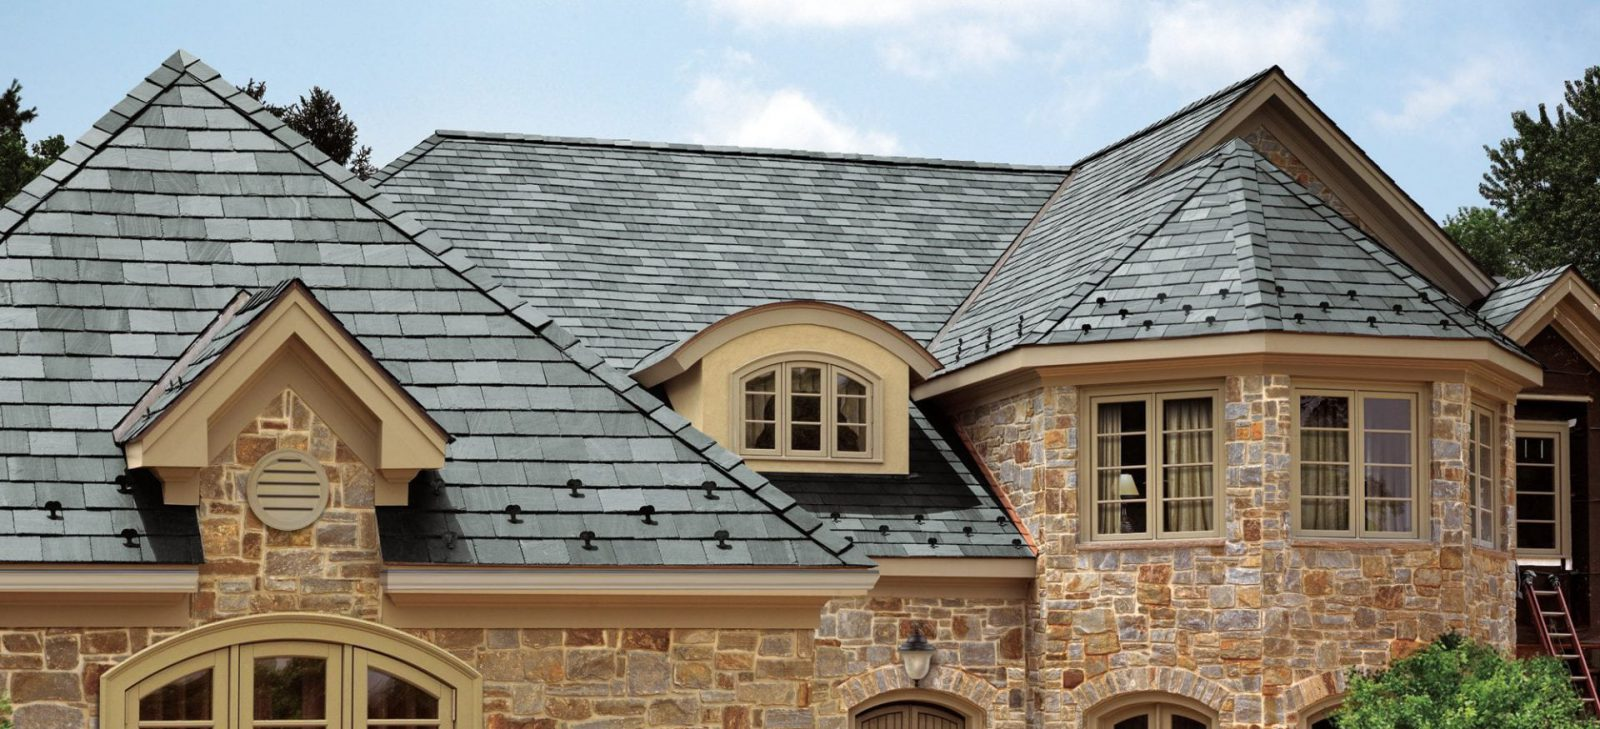 Guide to residential roofing